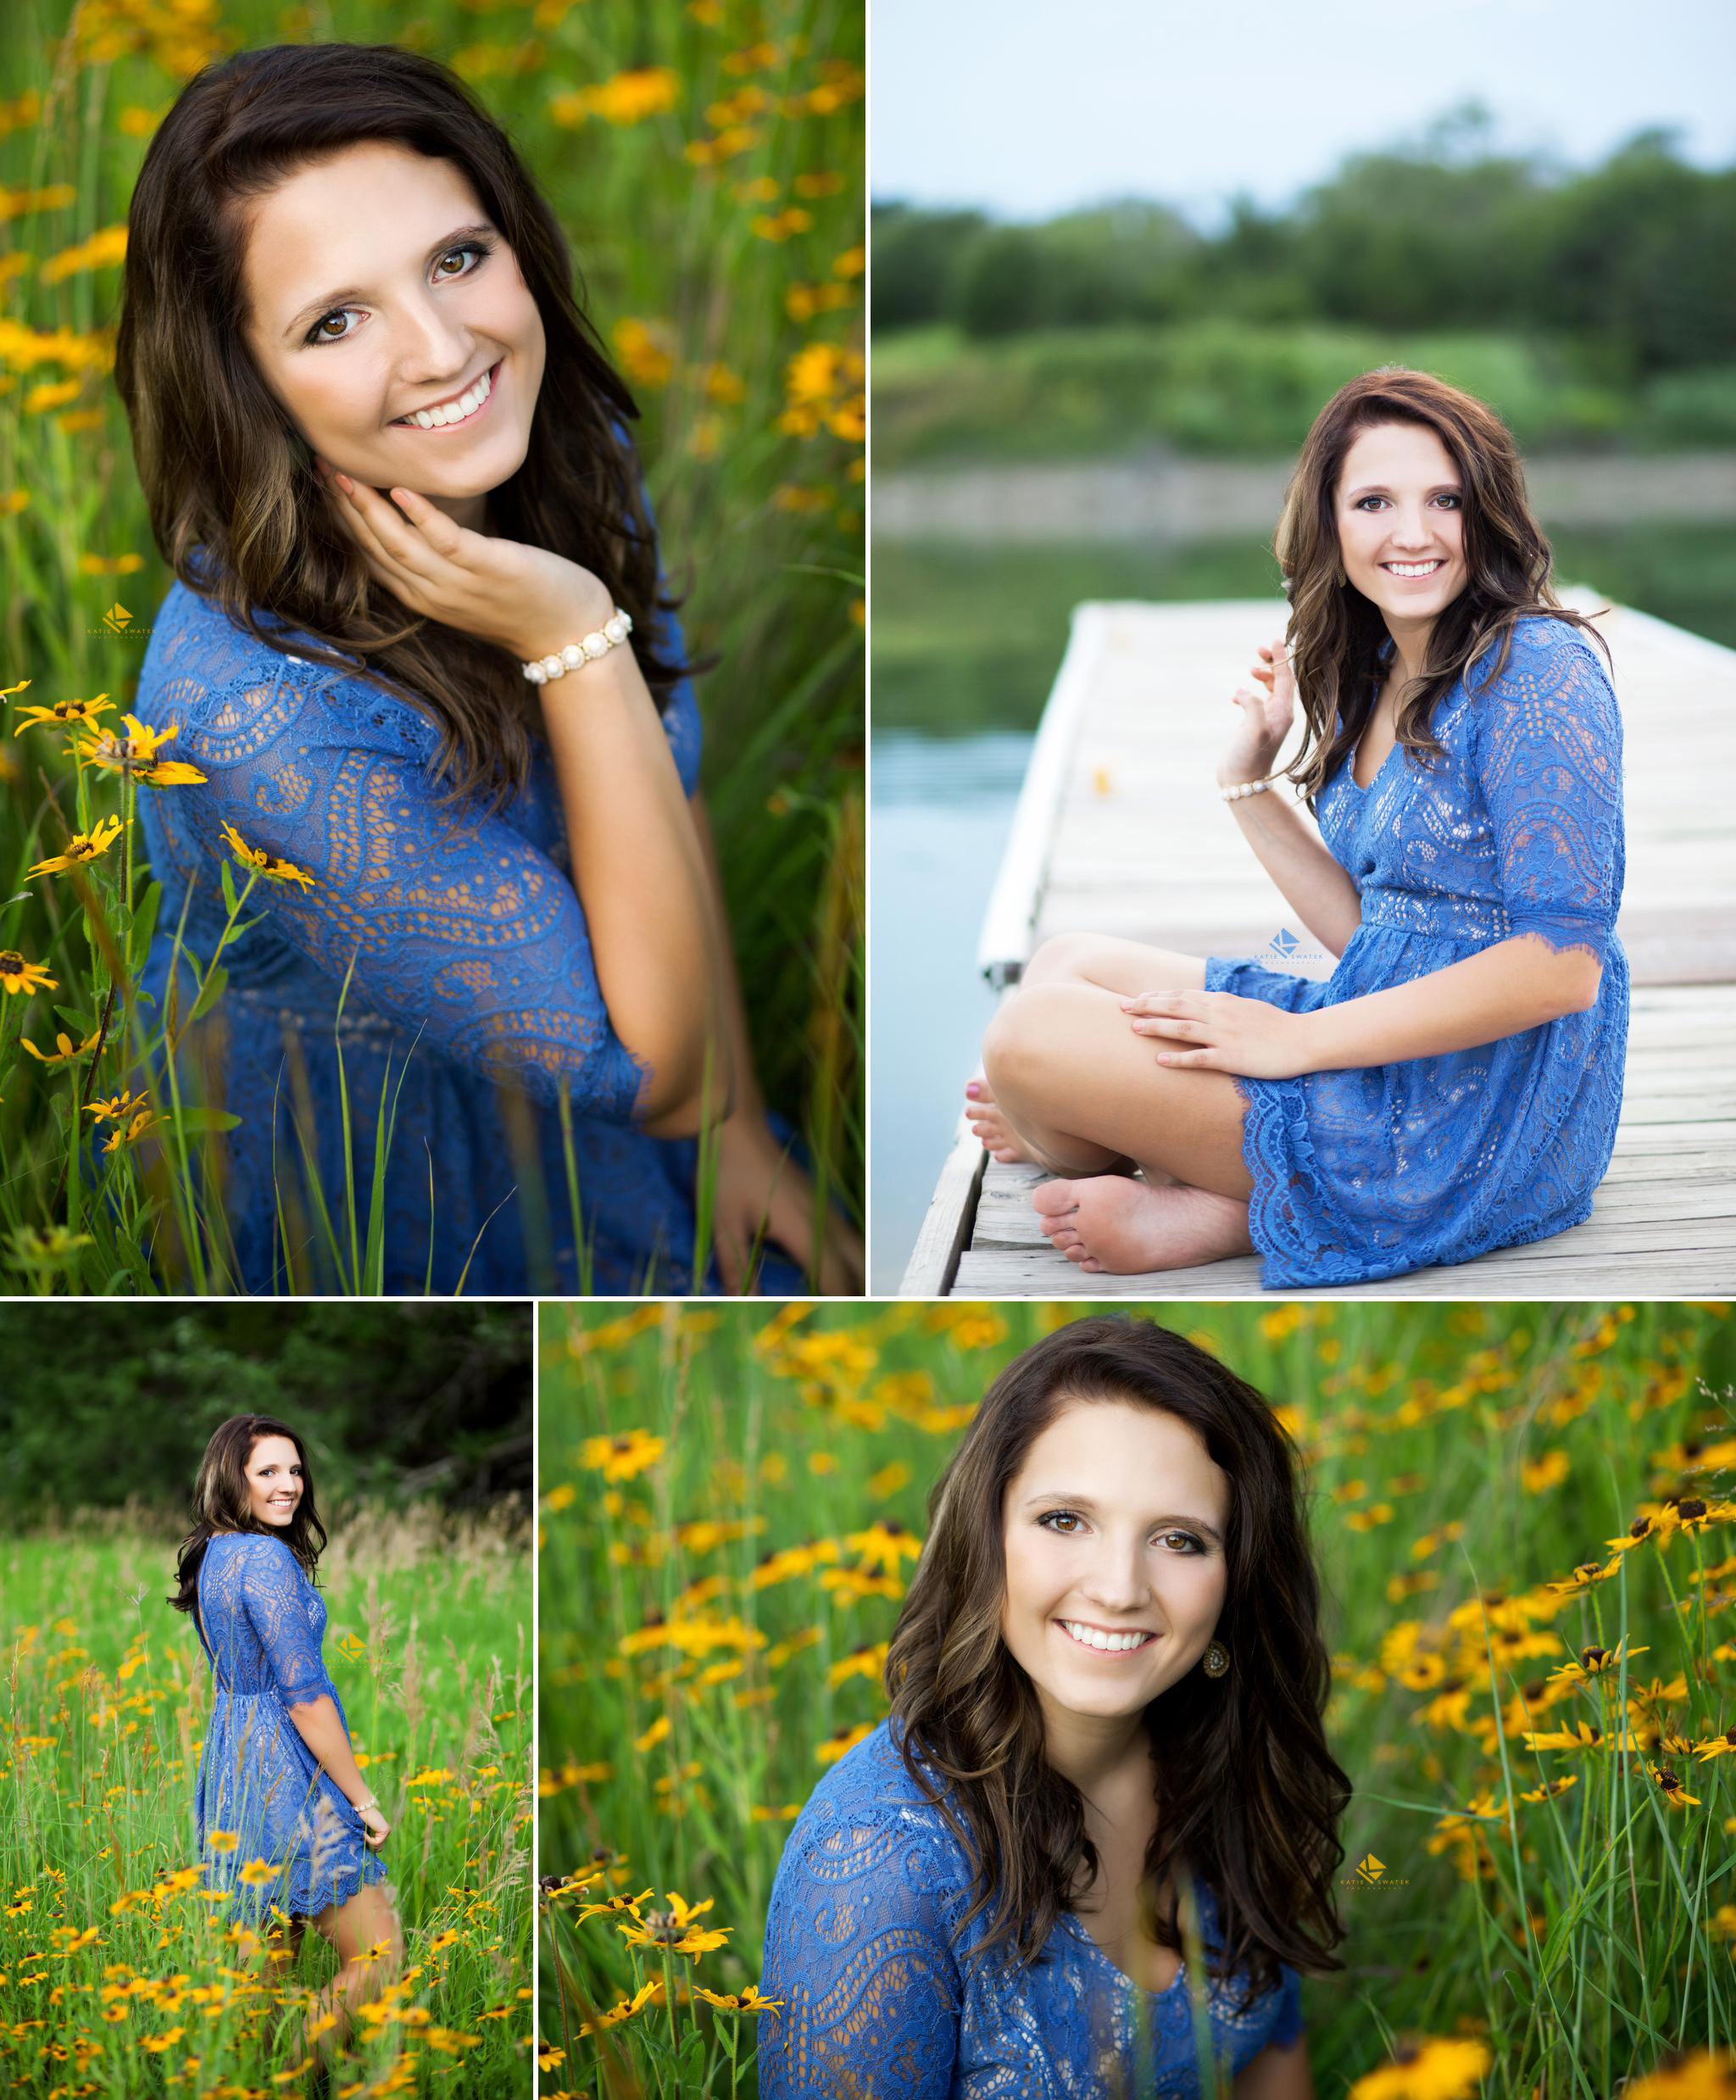 brunette senior girl poses in a blue lace dress in the middle of a yellow wildflower field and on a dock by the river